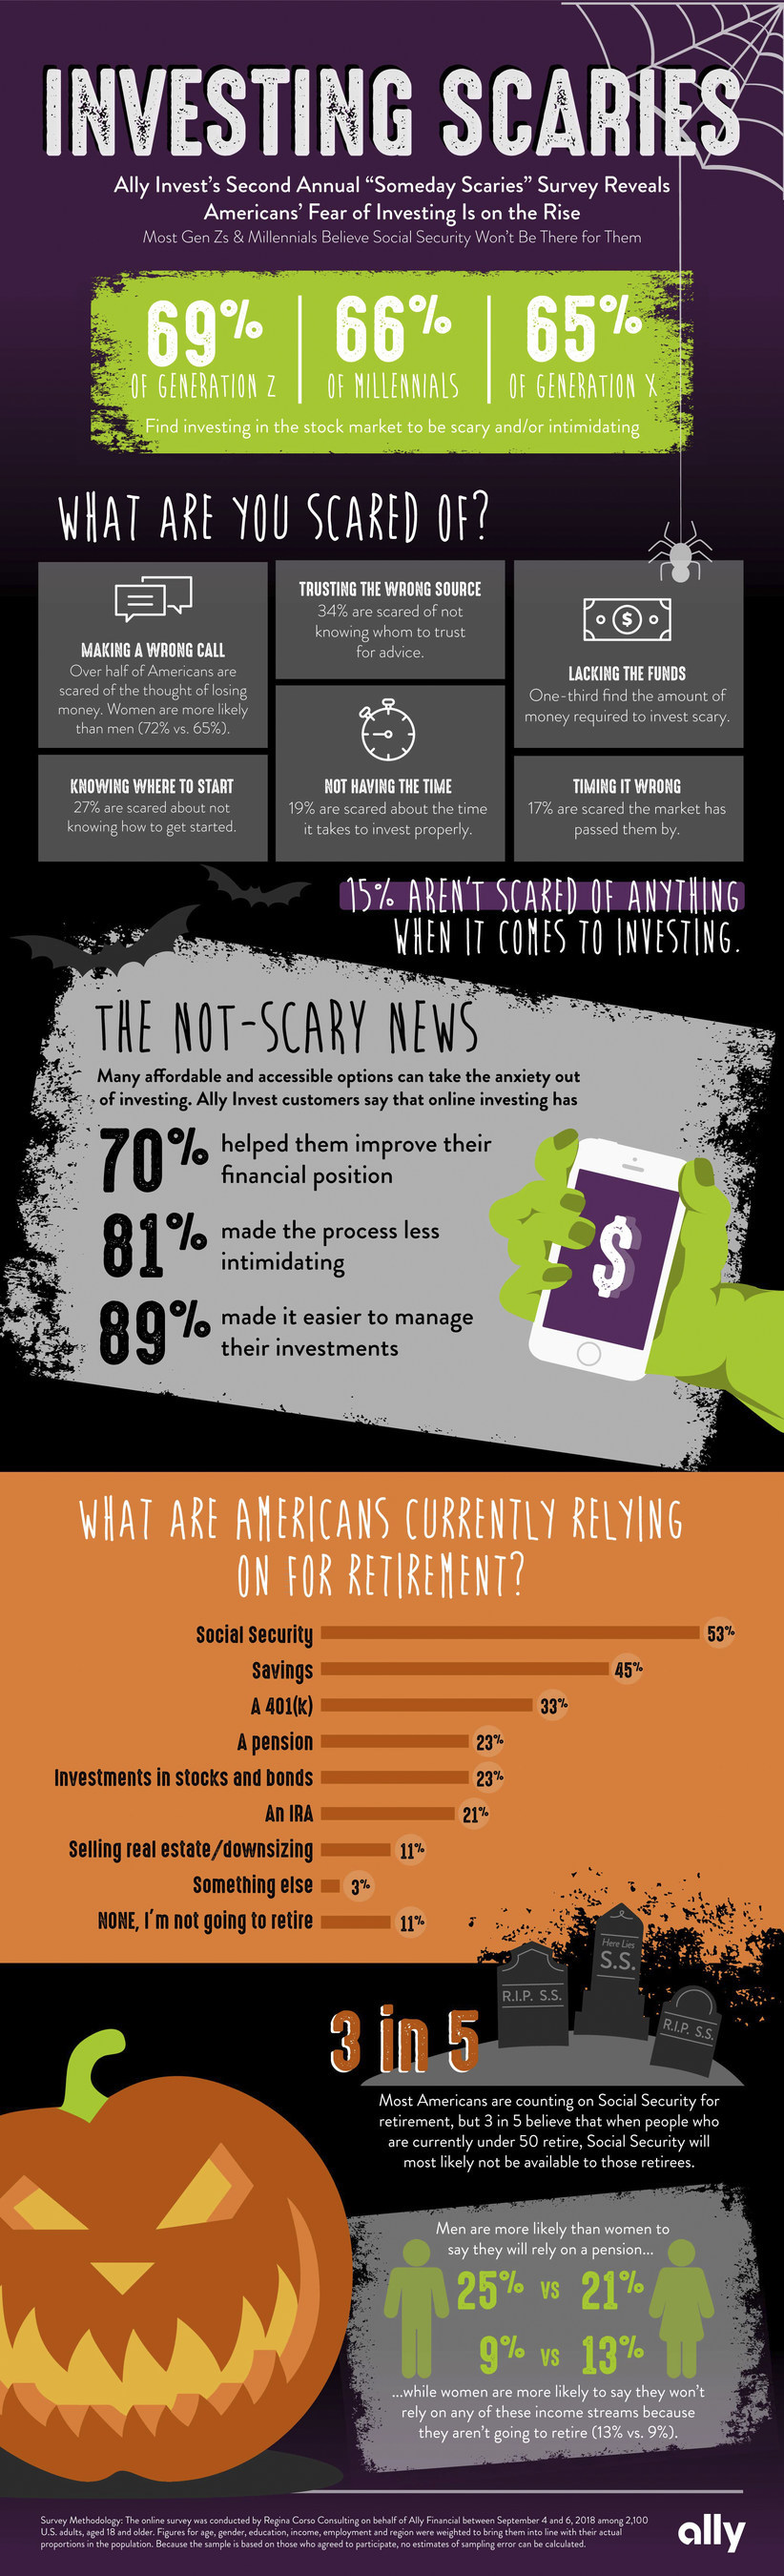 """Ally Invest's Second Annual """"Someday Scaries"""" Survey Reveals Americans' Fear of Investing Is on the Rise"""